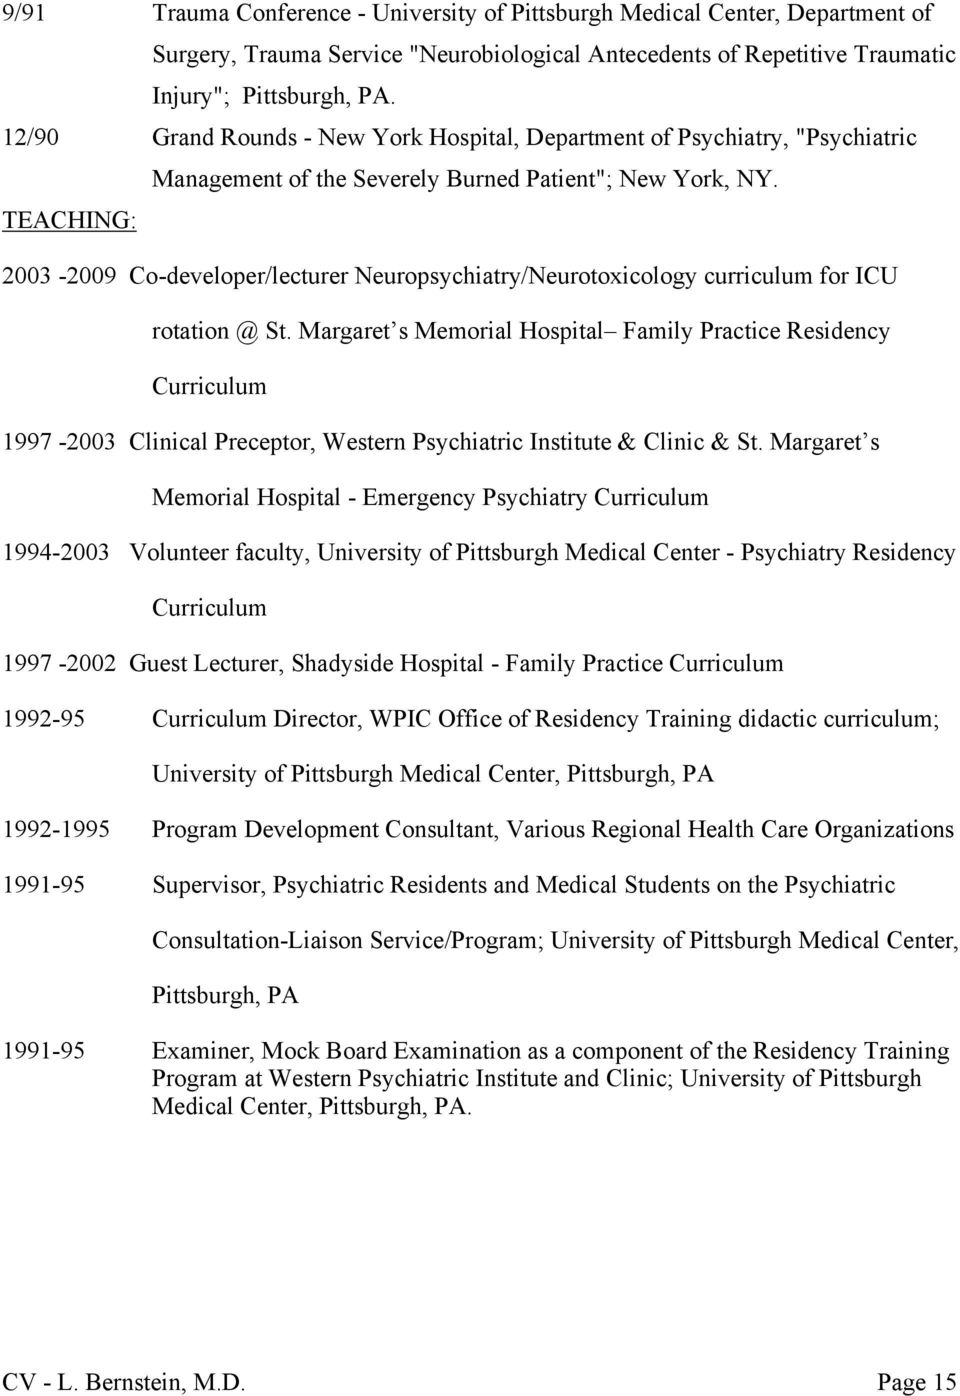 2003-2009 Co-developer/lecturer Neuropsychiatry/Neurotoxicology curriculum for ICU rotation @ St.